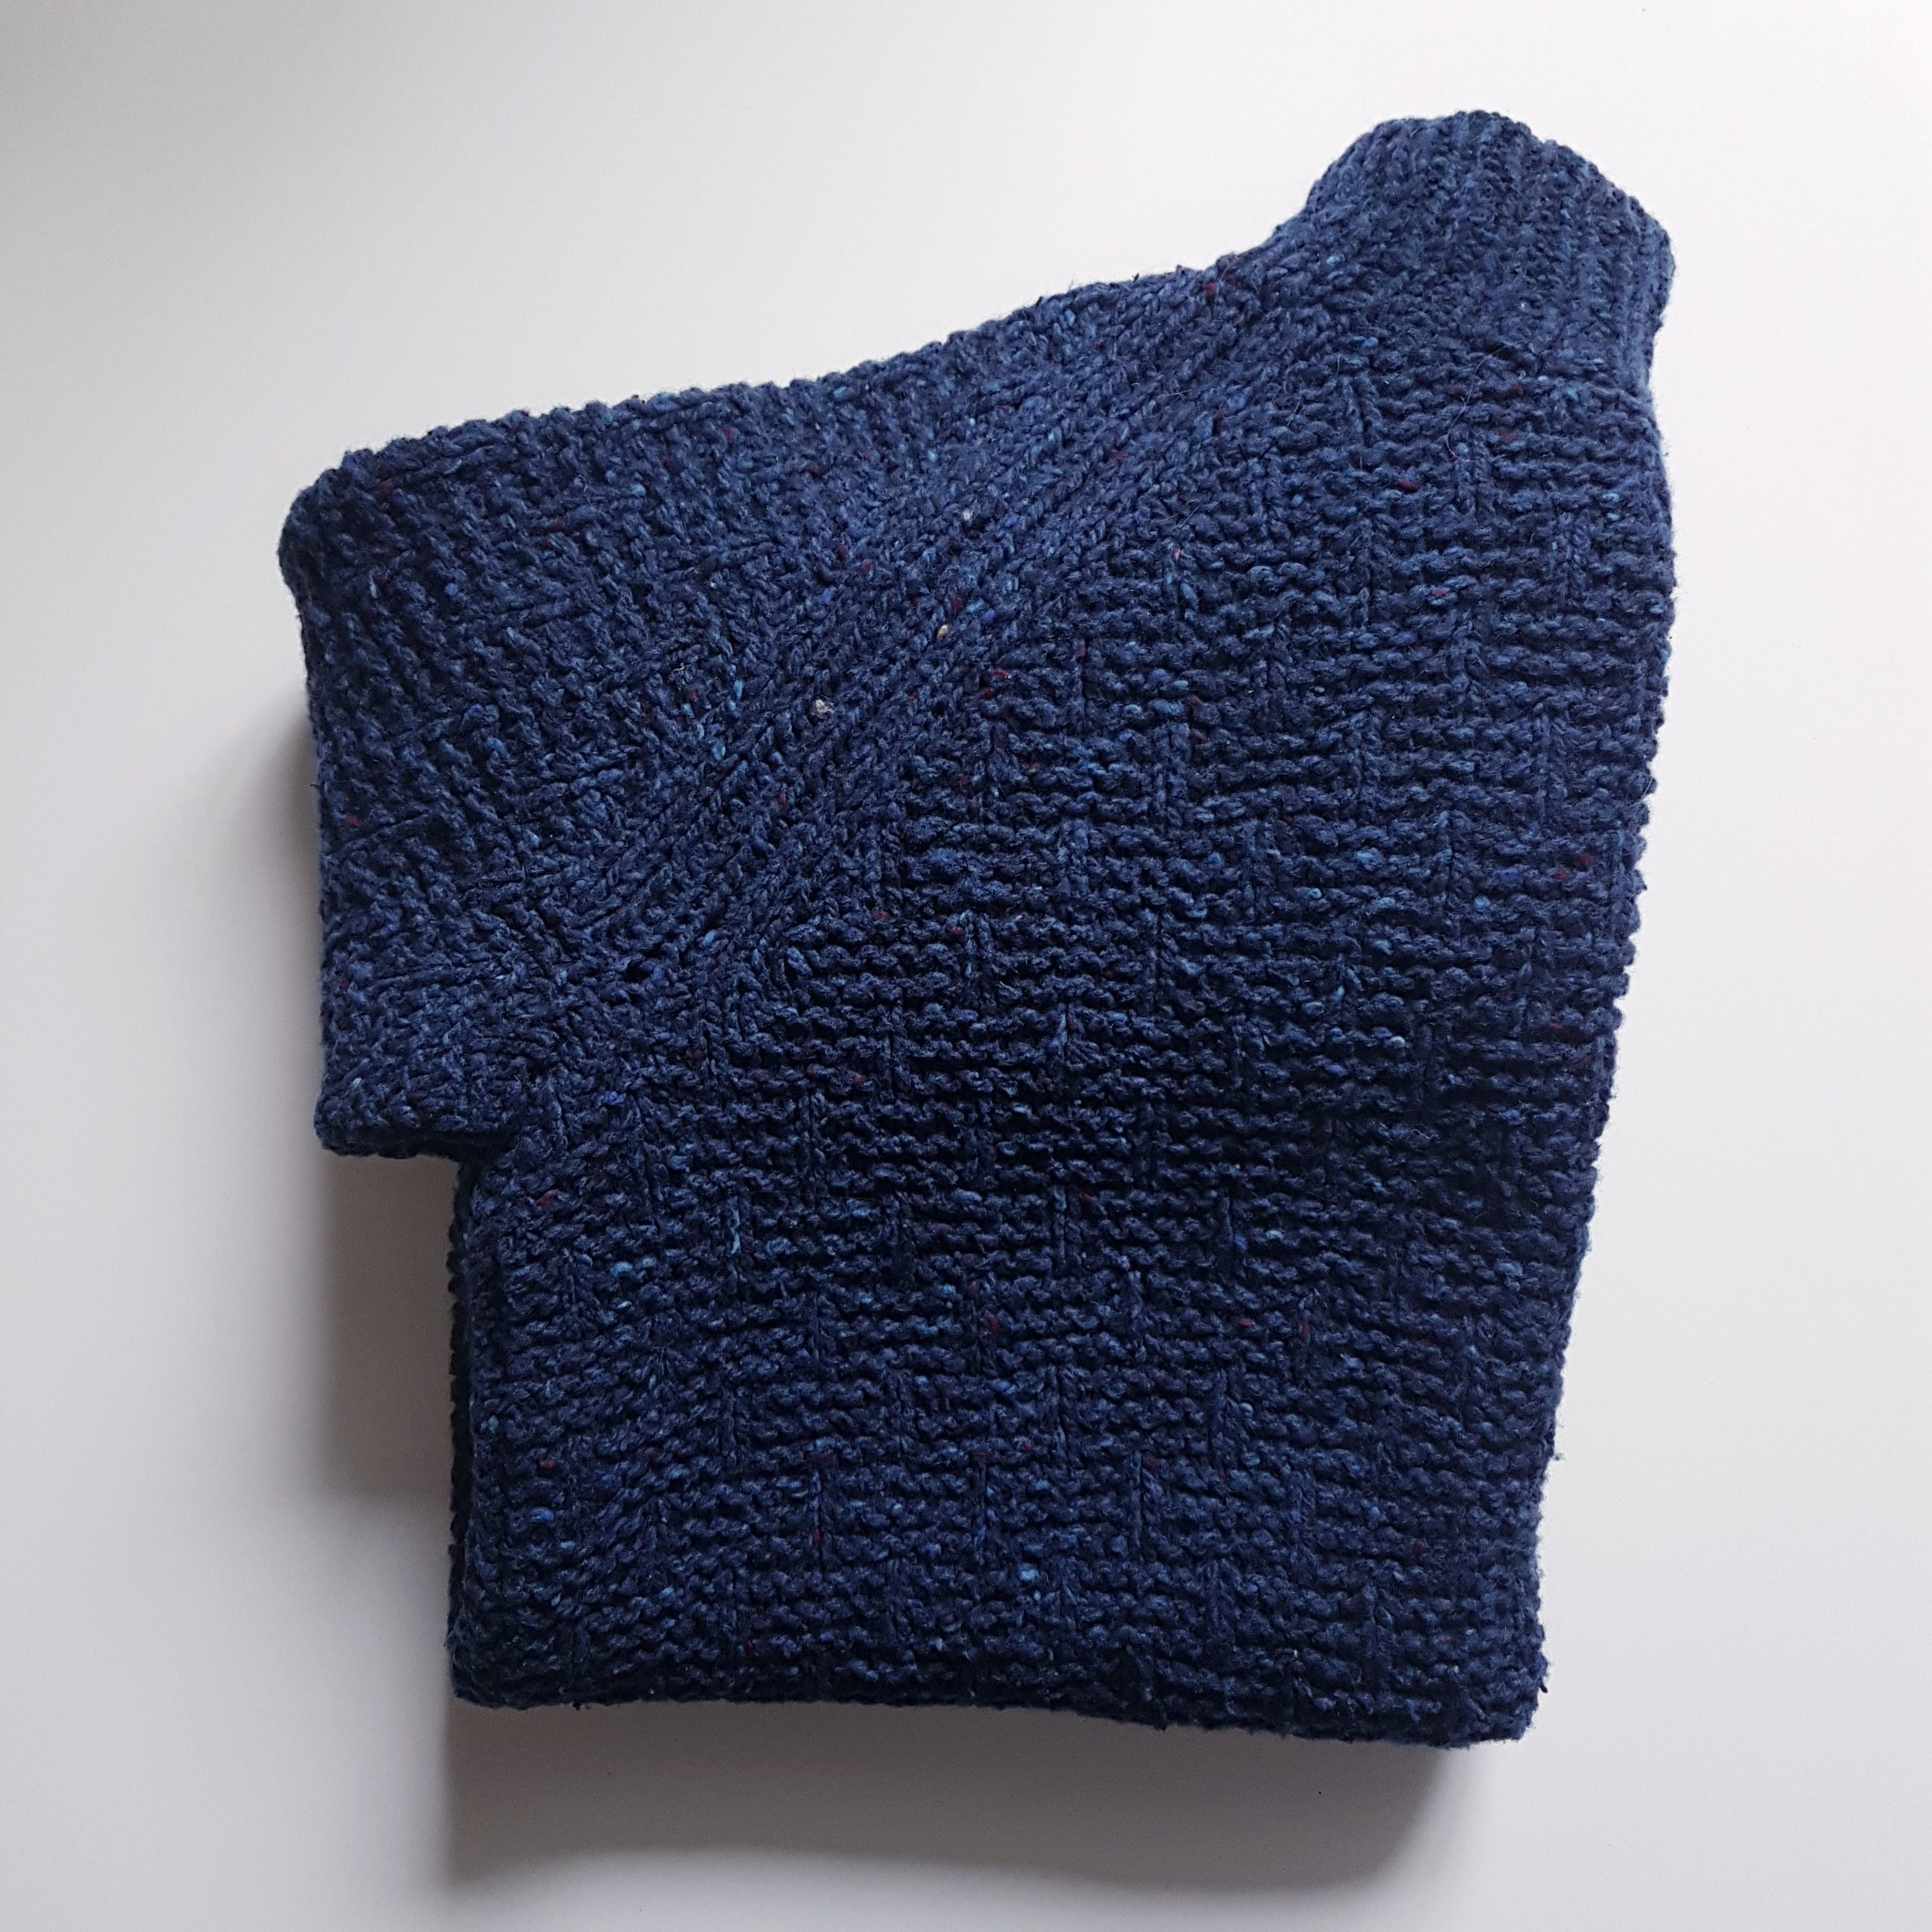 Shorthand Sweater in The Fibre Co Arranmore